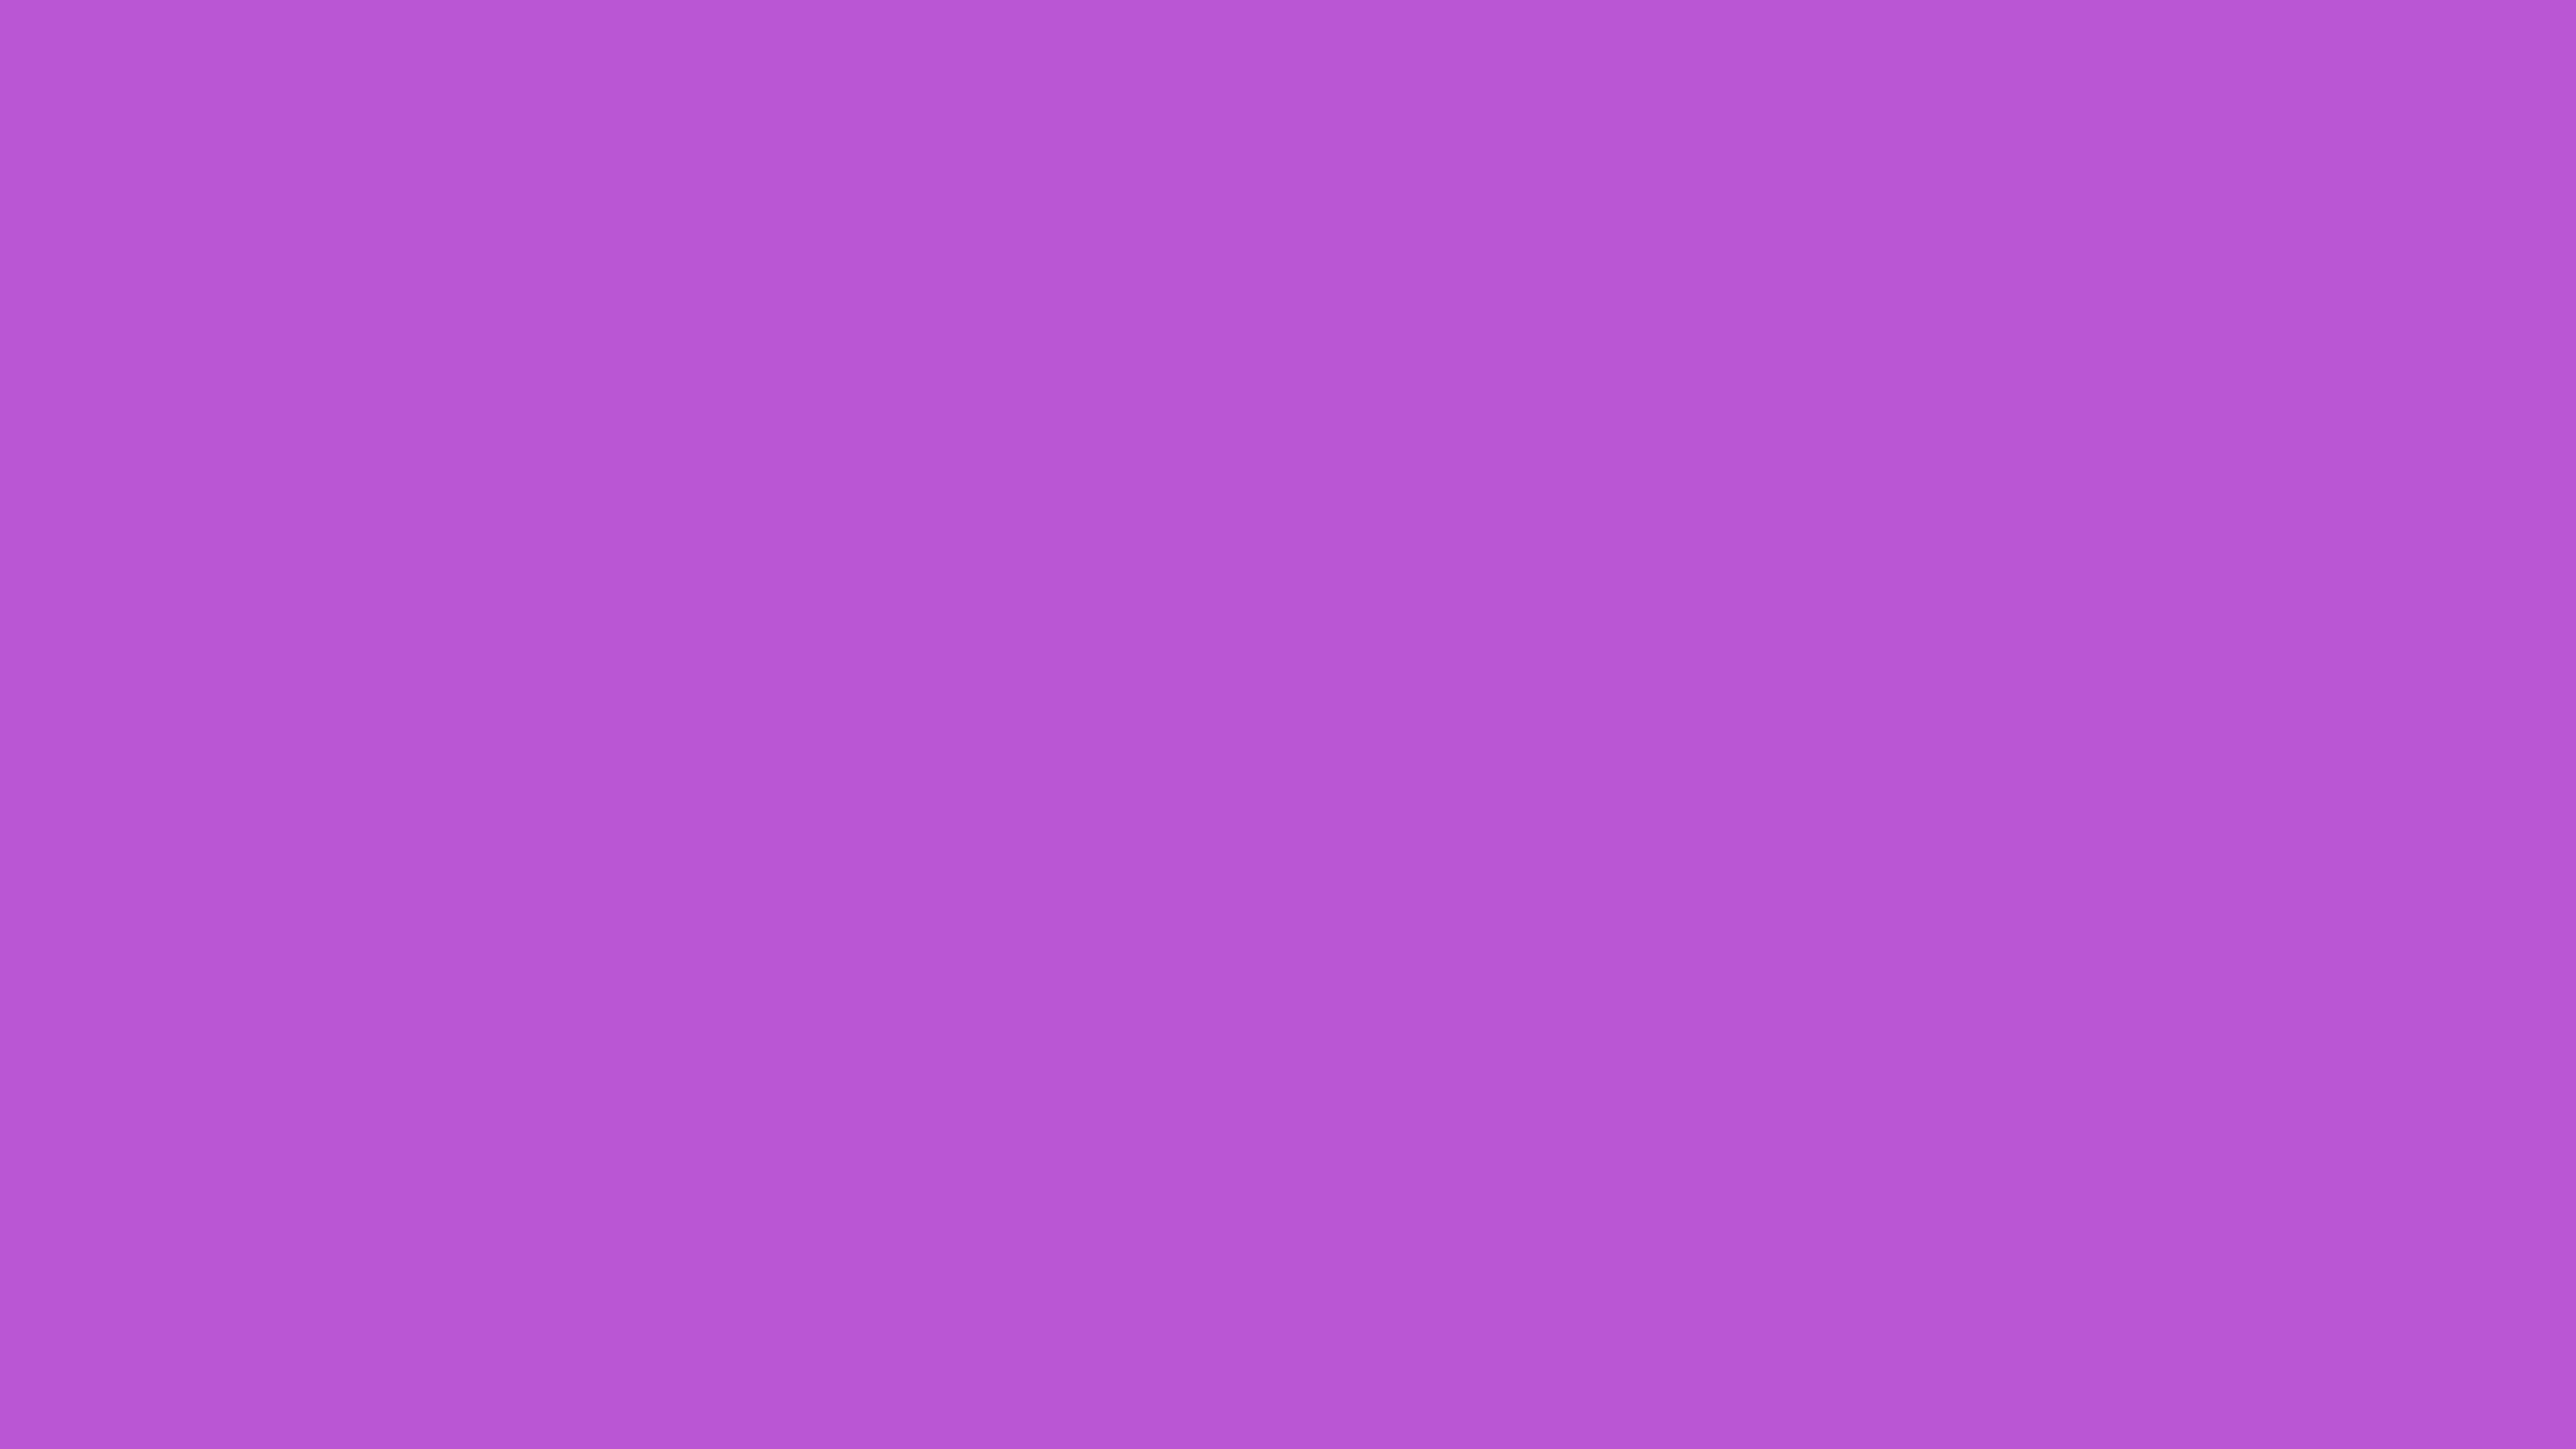 7680x4320 Medium Orchid Solid Color Background